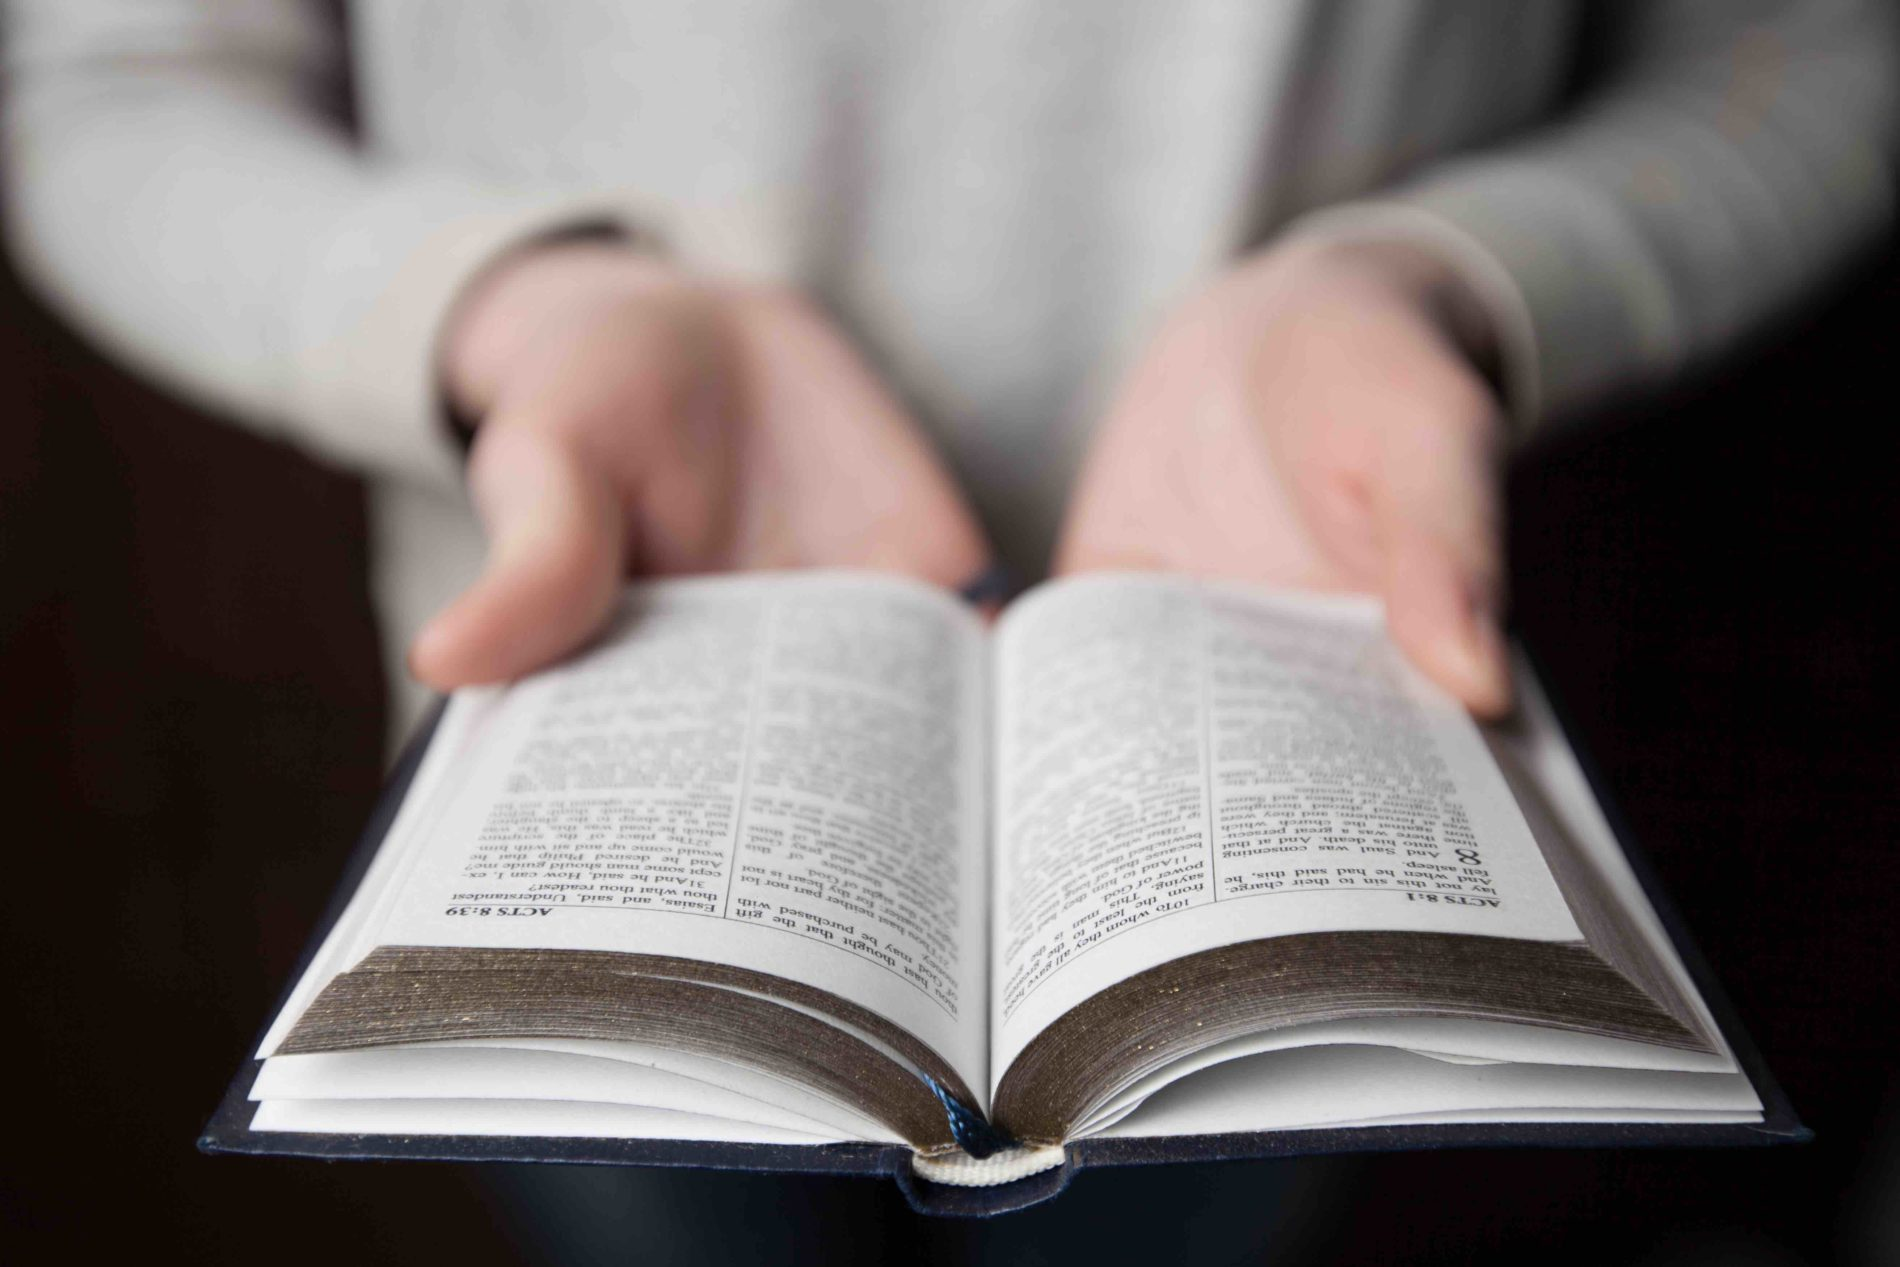 LightWorkers 9 Engaging Things Everyone Should Do When Reading the Bible.